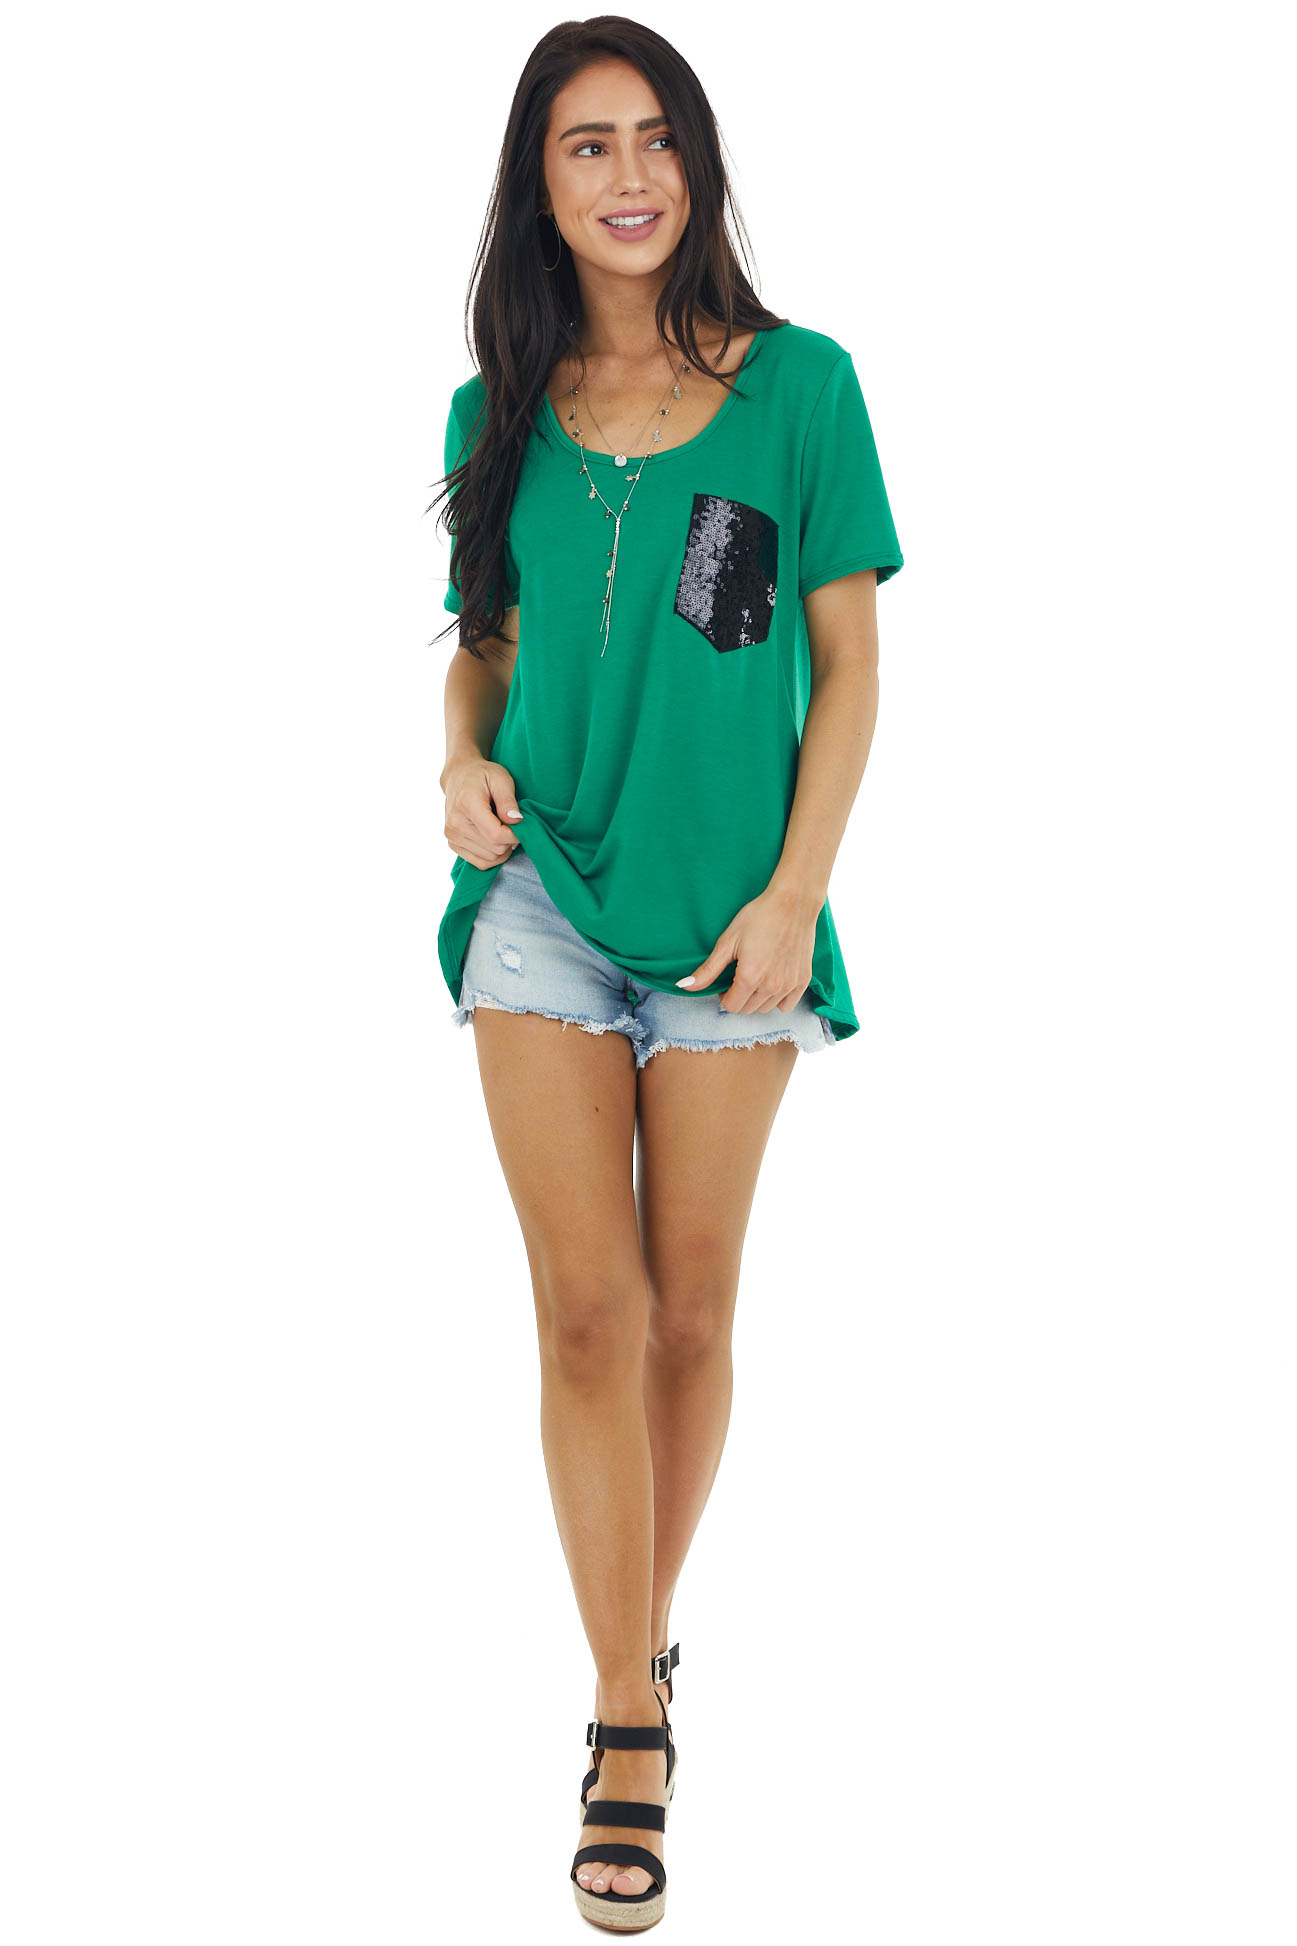 Kelly Green Short Sleeve Knit Top With Sequin Pocket Detail